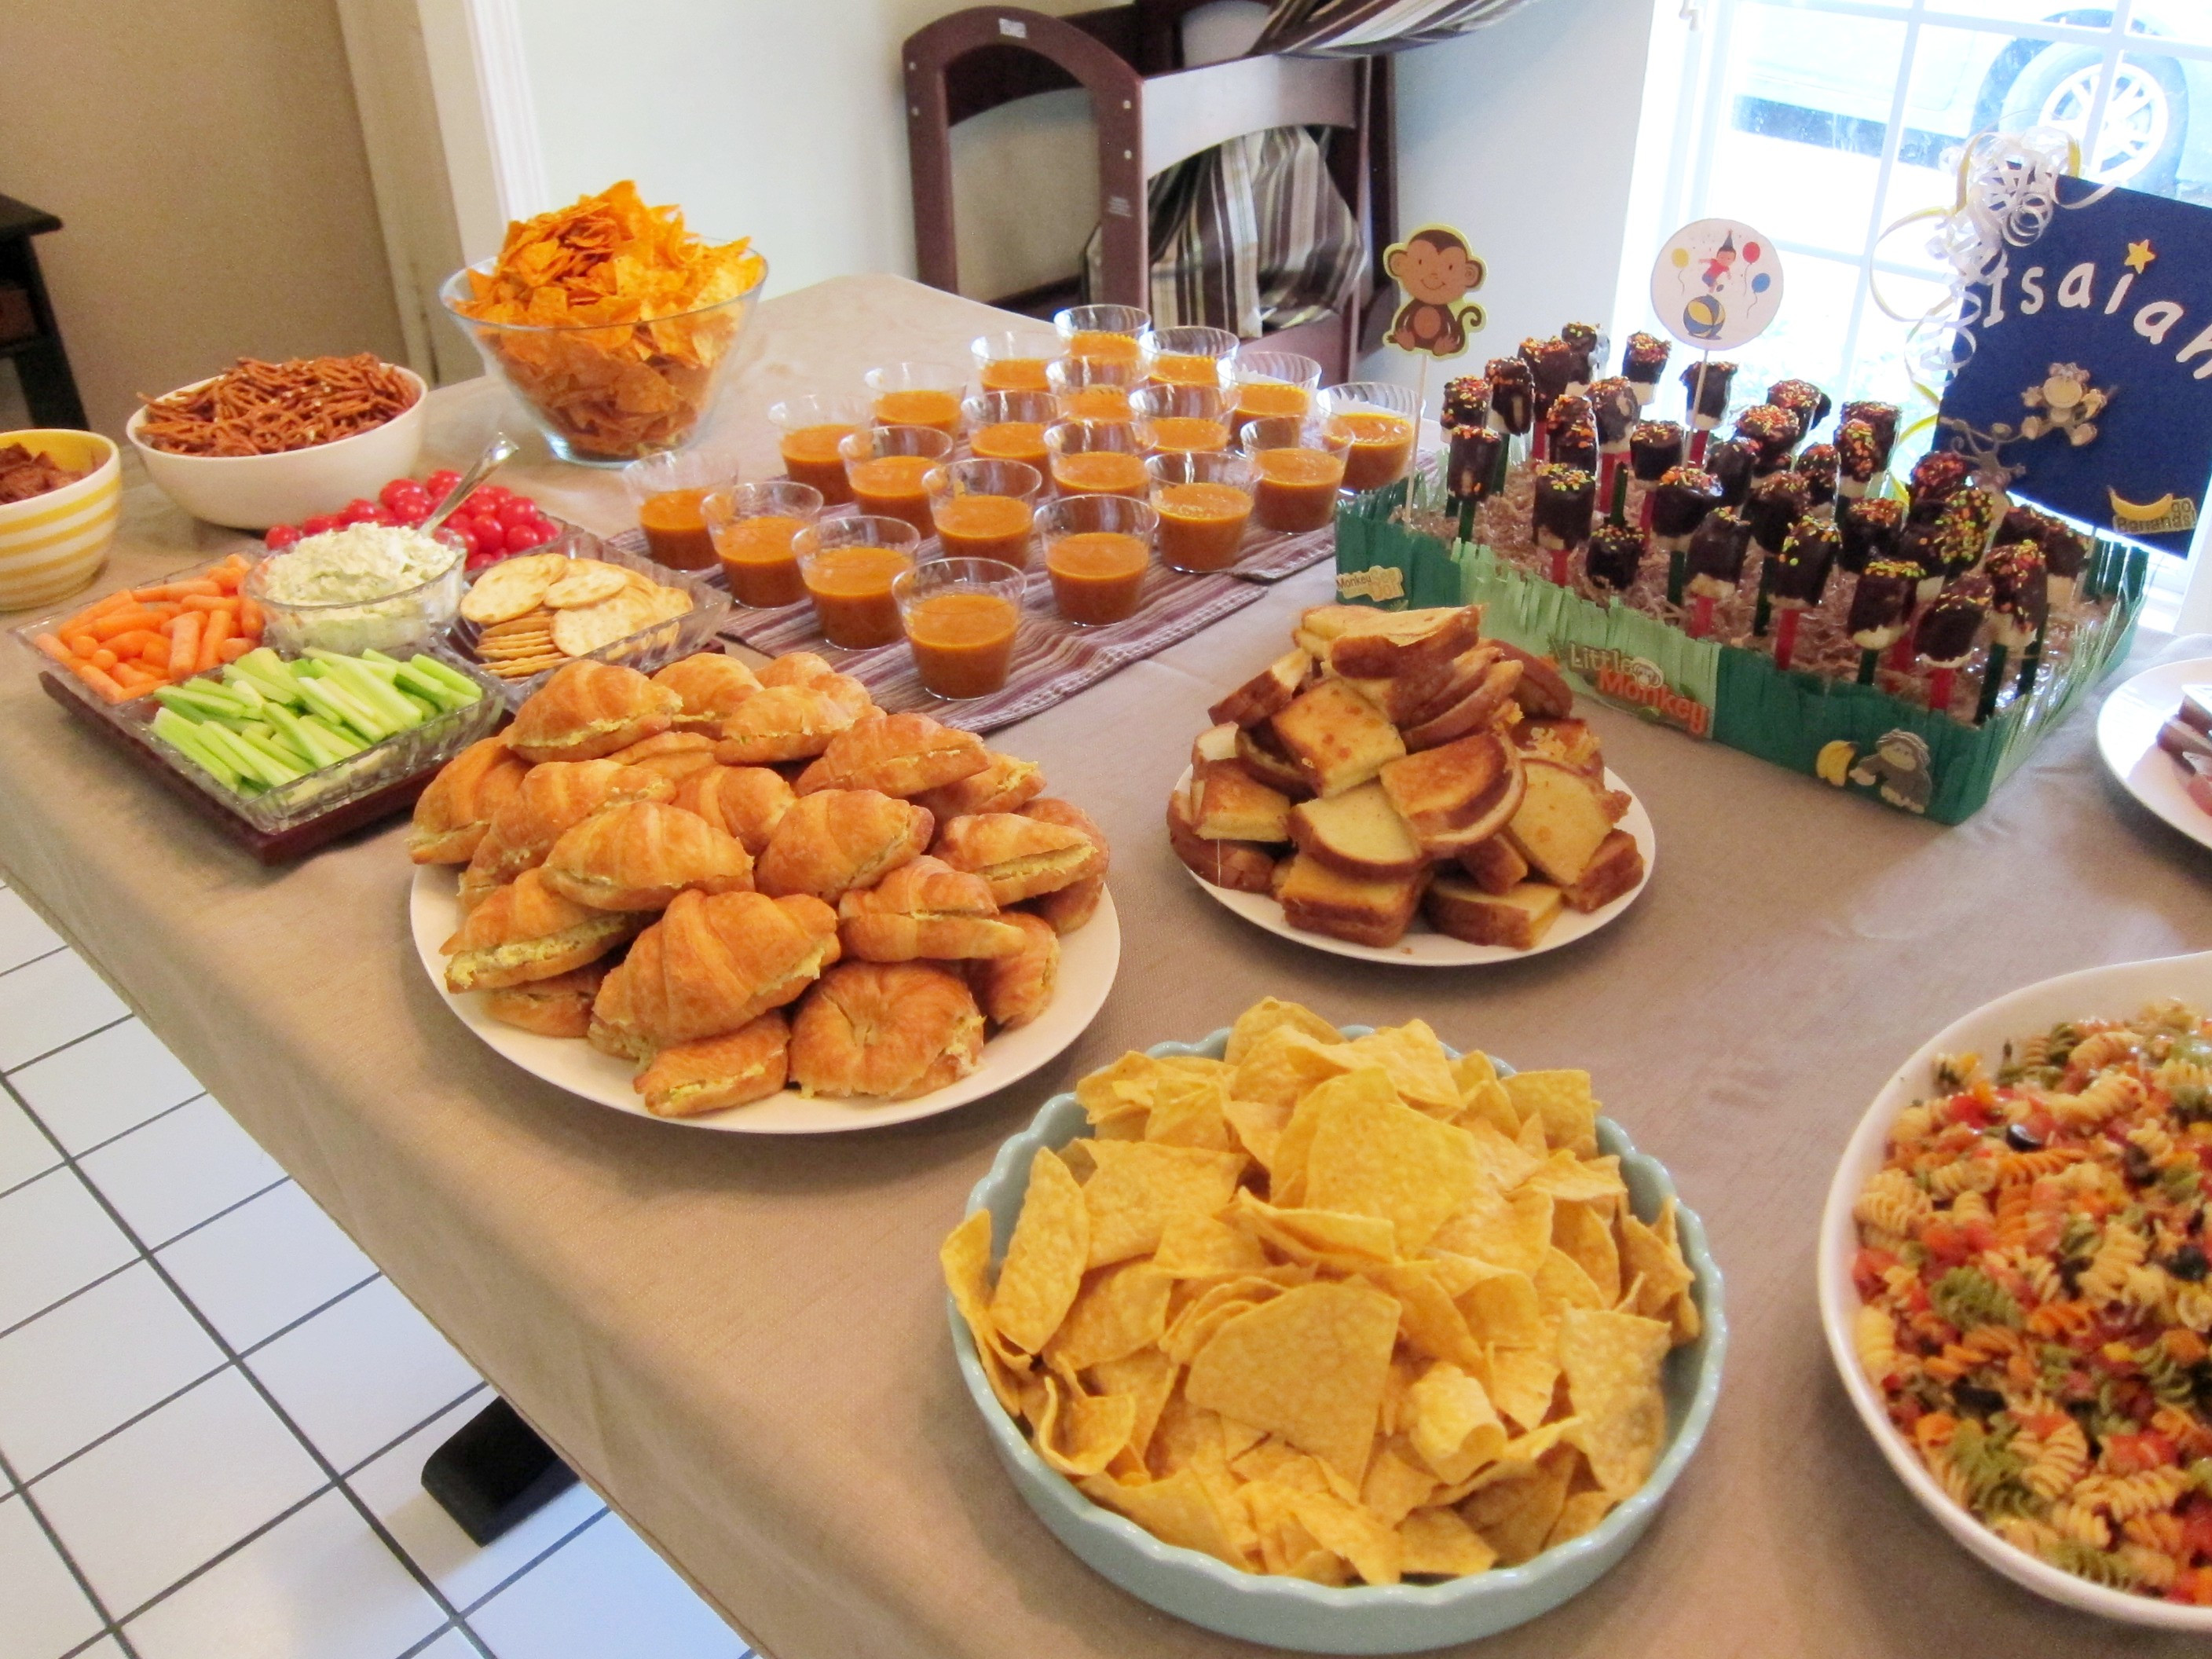 Best ideas about Birthday Party Menu . Save or Pin Appetizers Now.